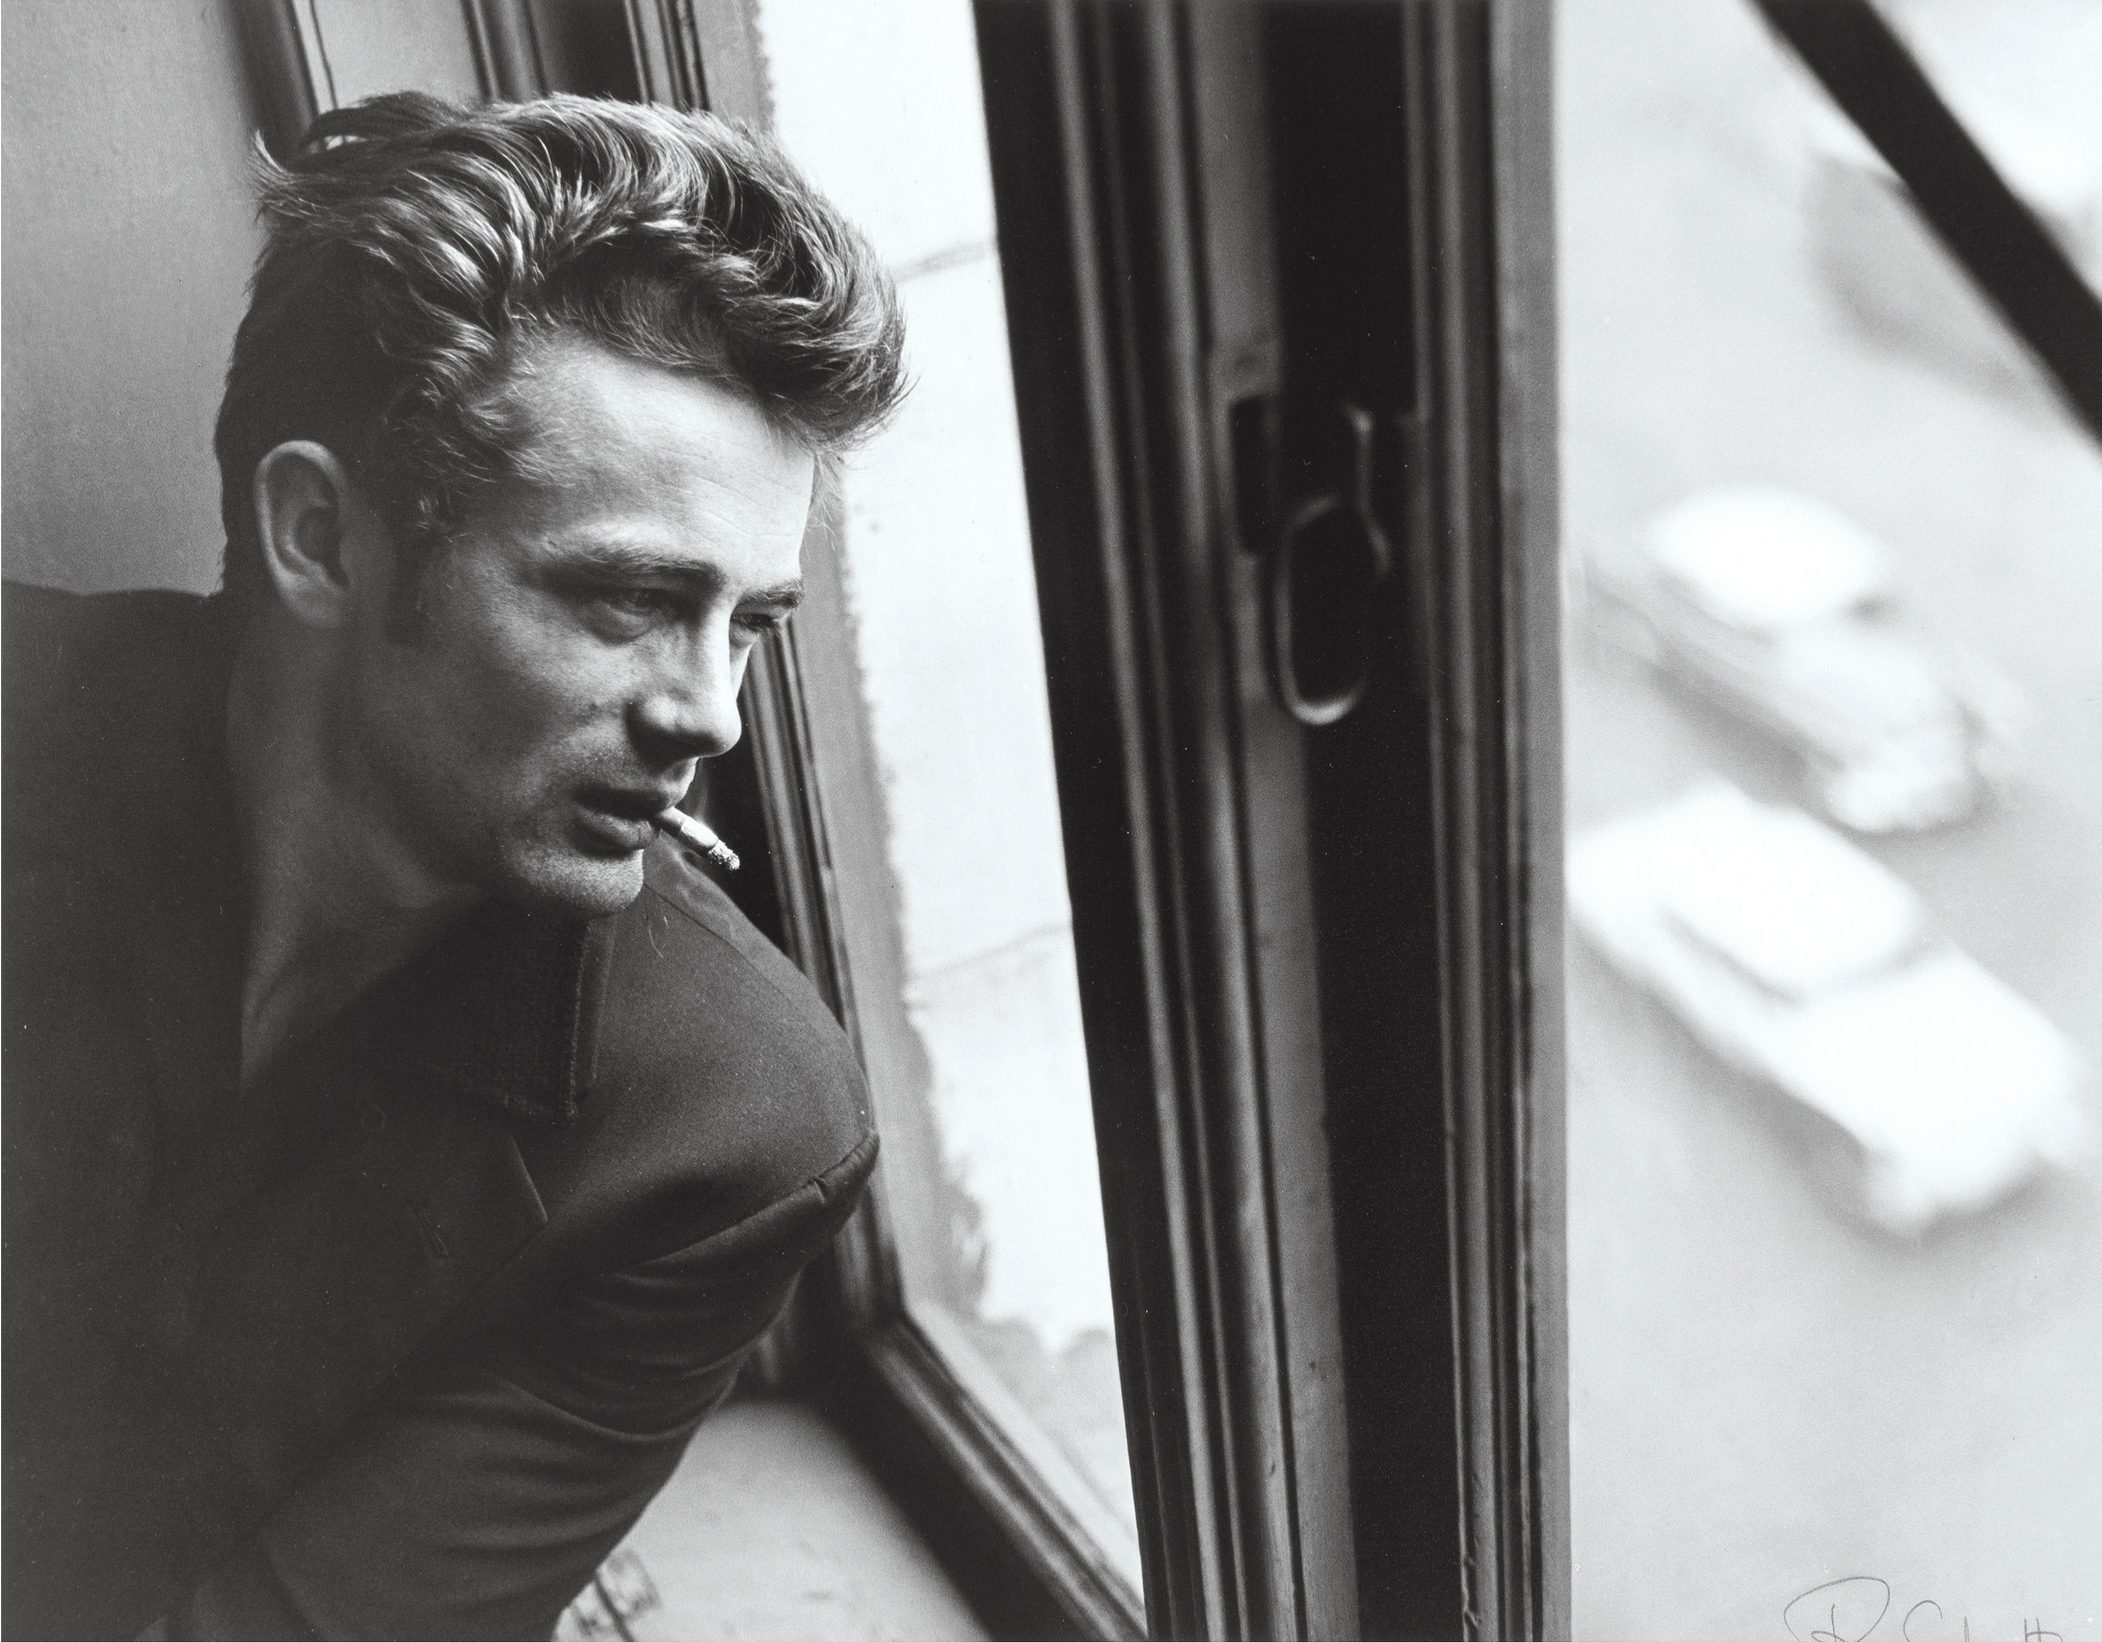 James Dean in Window with Cigarette, ABC Studios, New York City